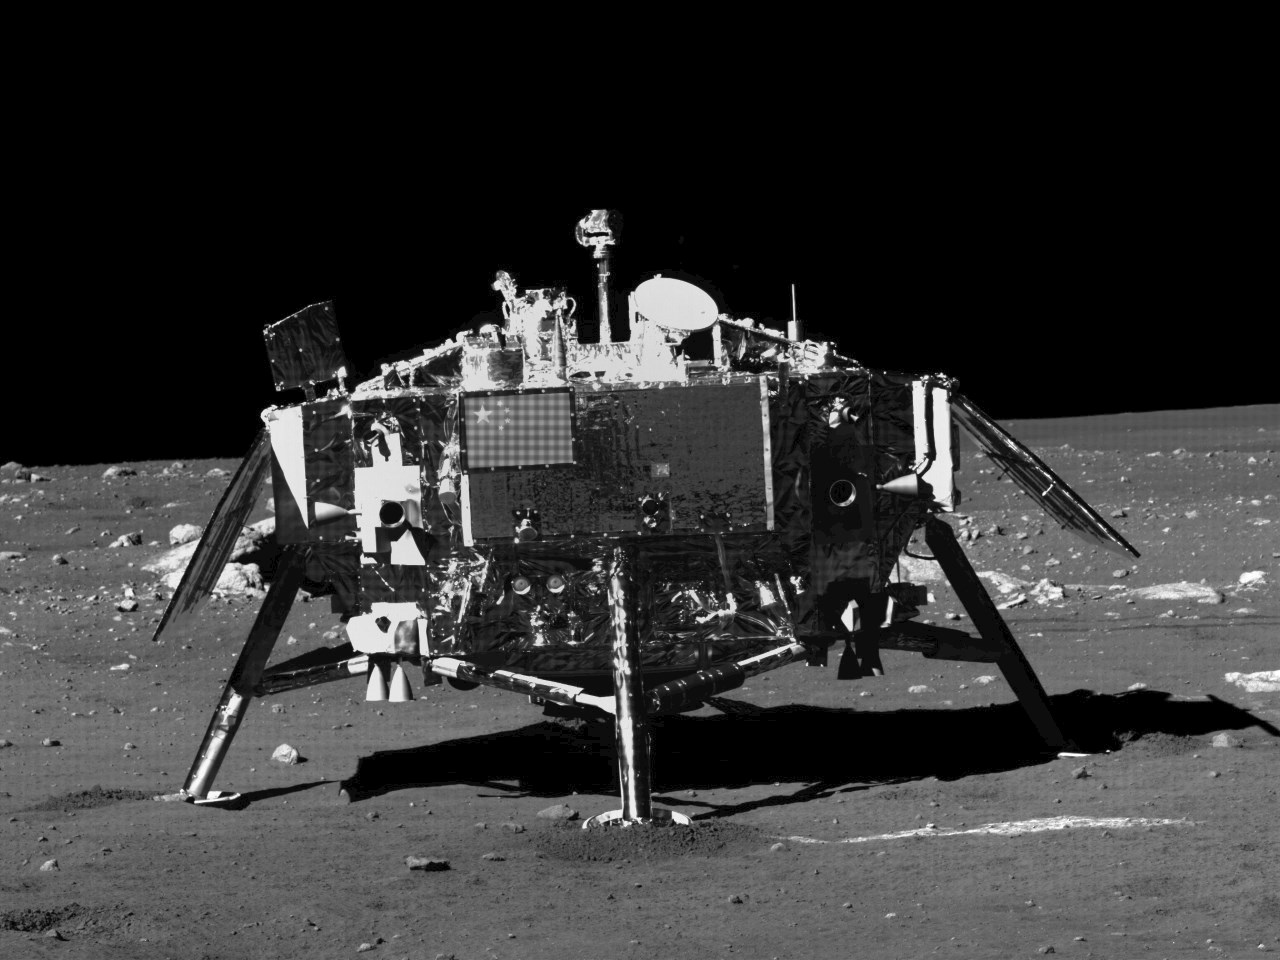 Chang'e 3 data: Rover Panoramic Camera